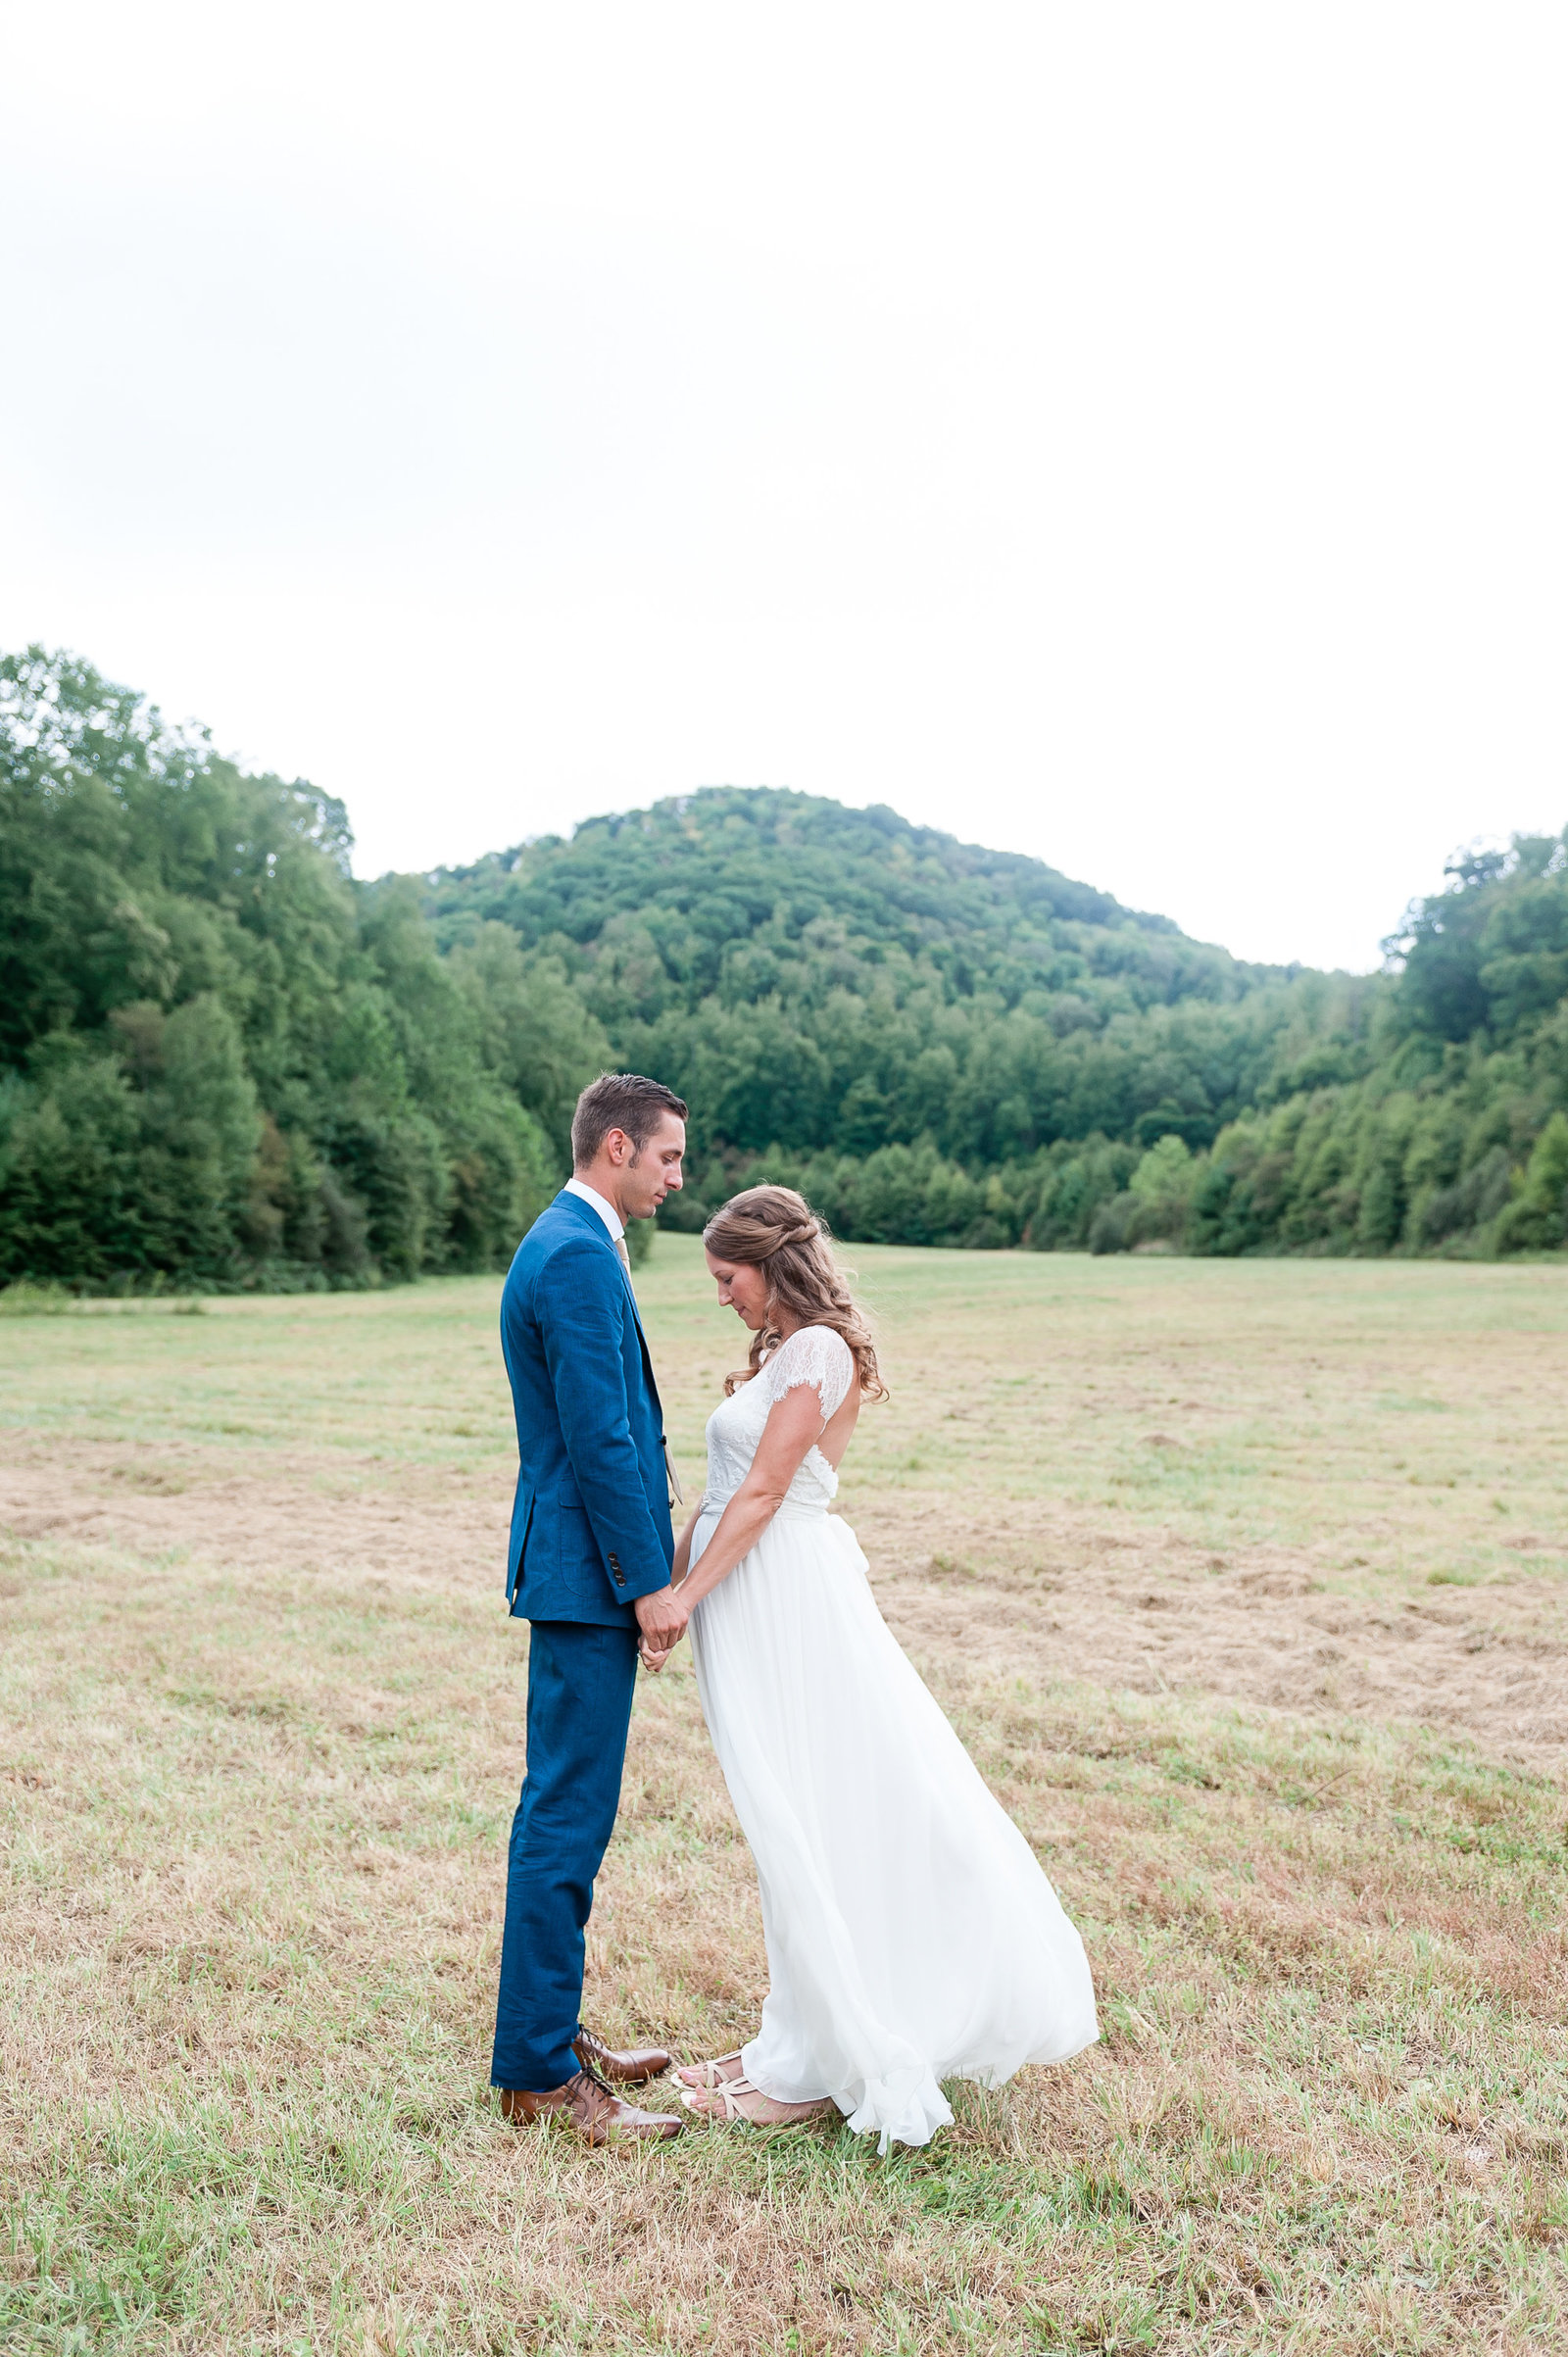 Shelly-and-Ryan-Asheville-NC-Wedding-Melissa-Desjardins-Photography-2